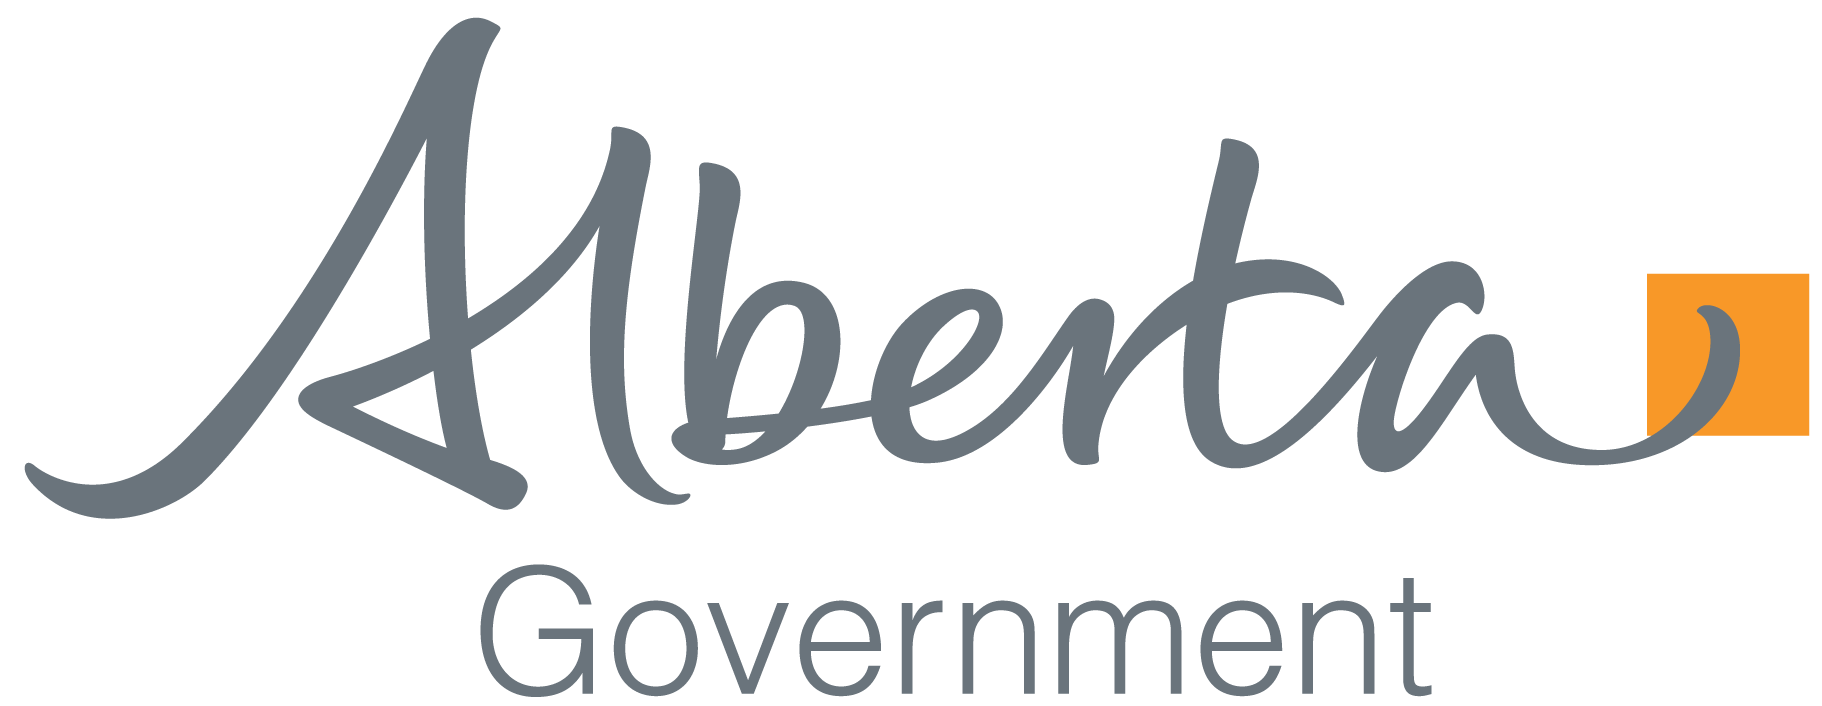 AB-Logo-orange-Spot_CMYK---GOVERNMENTTag.png